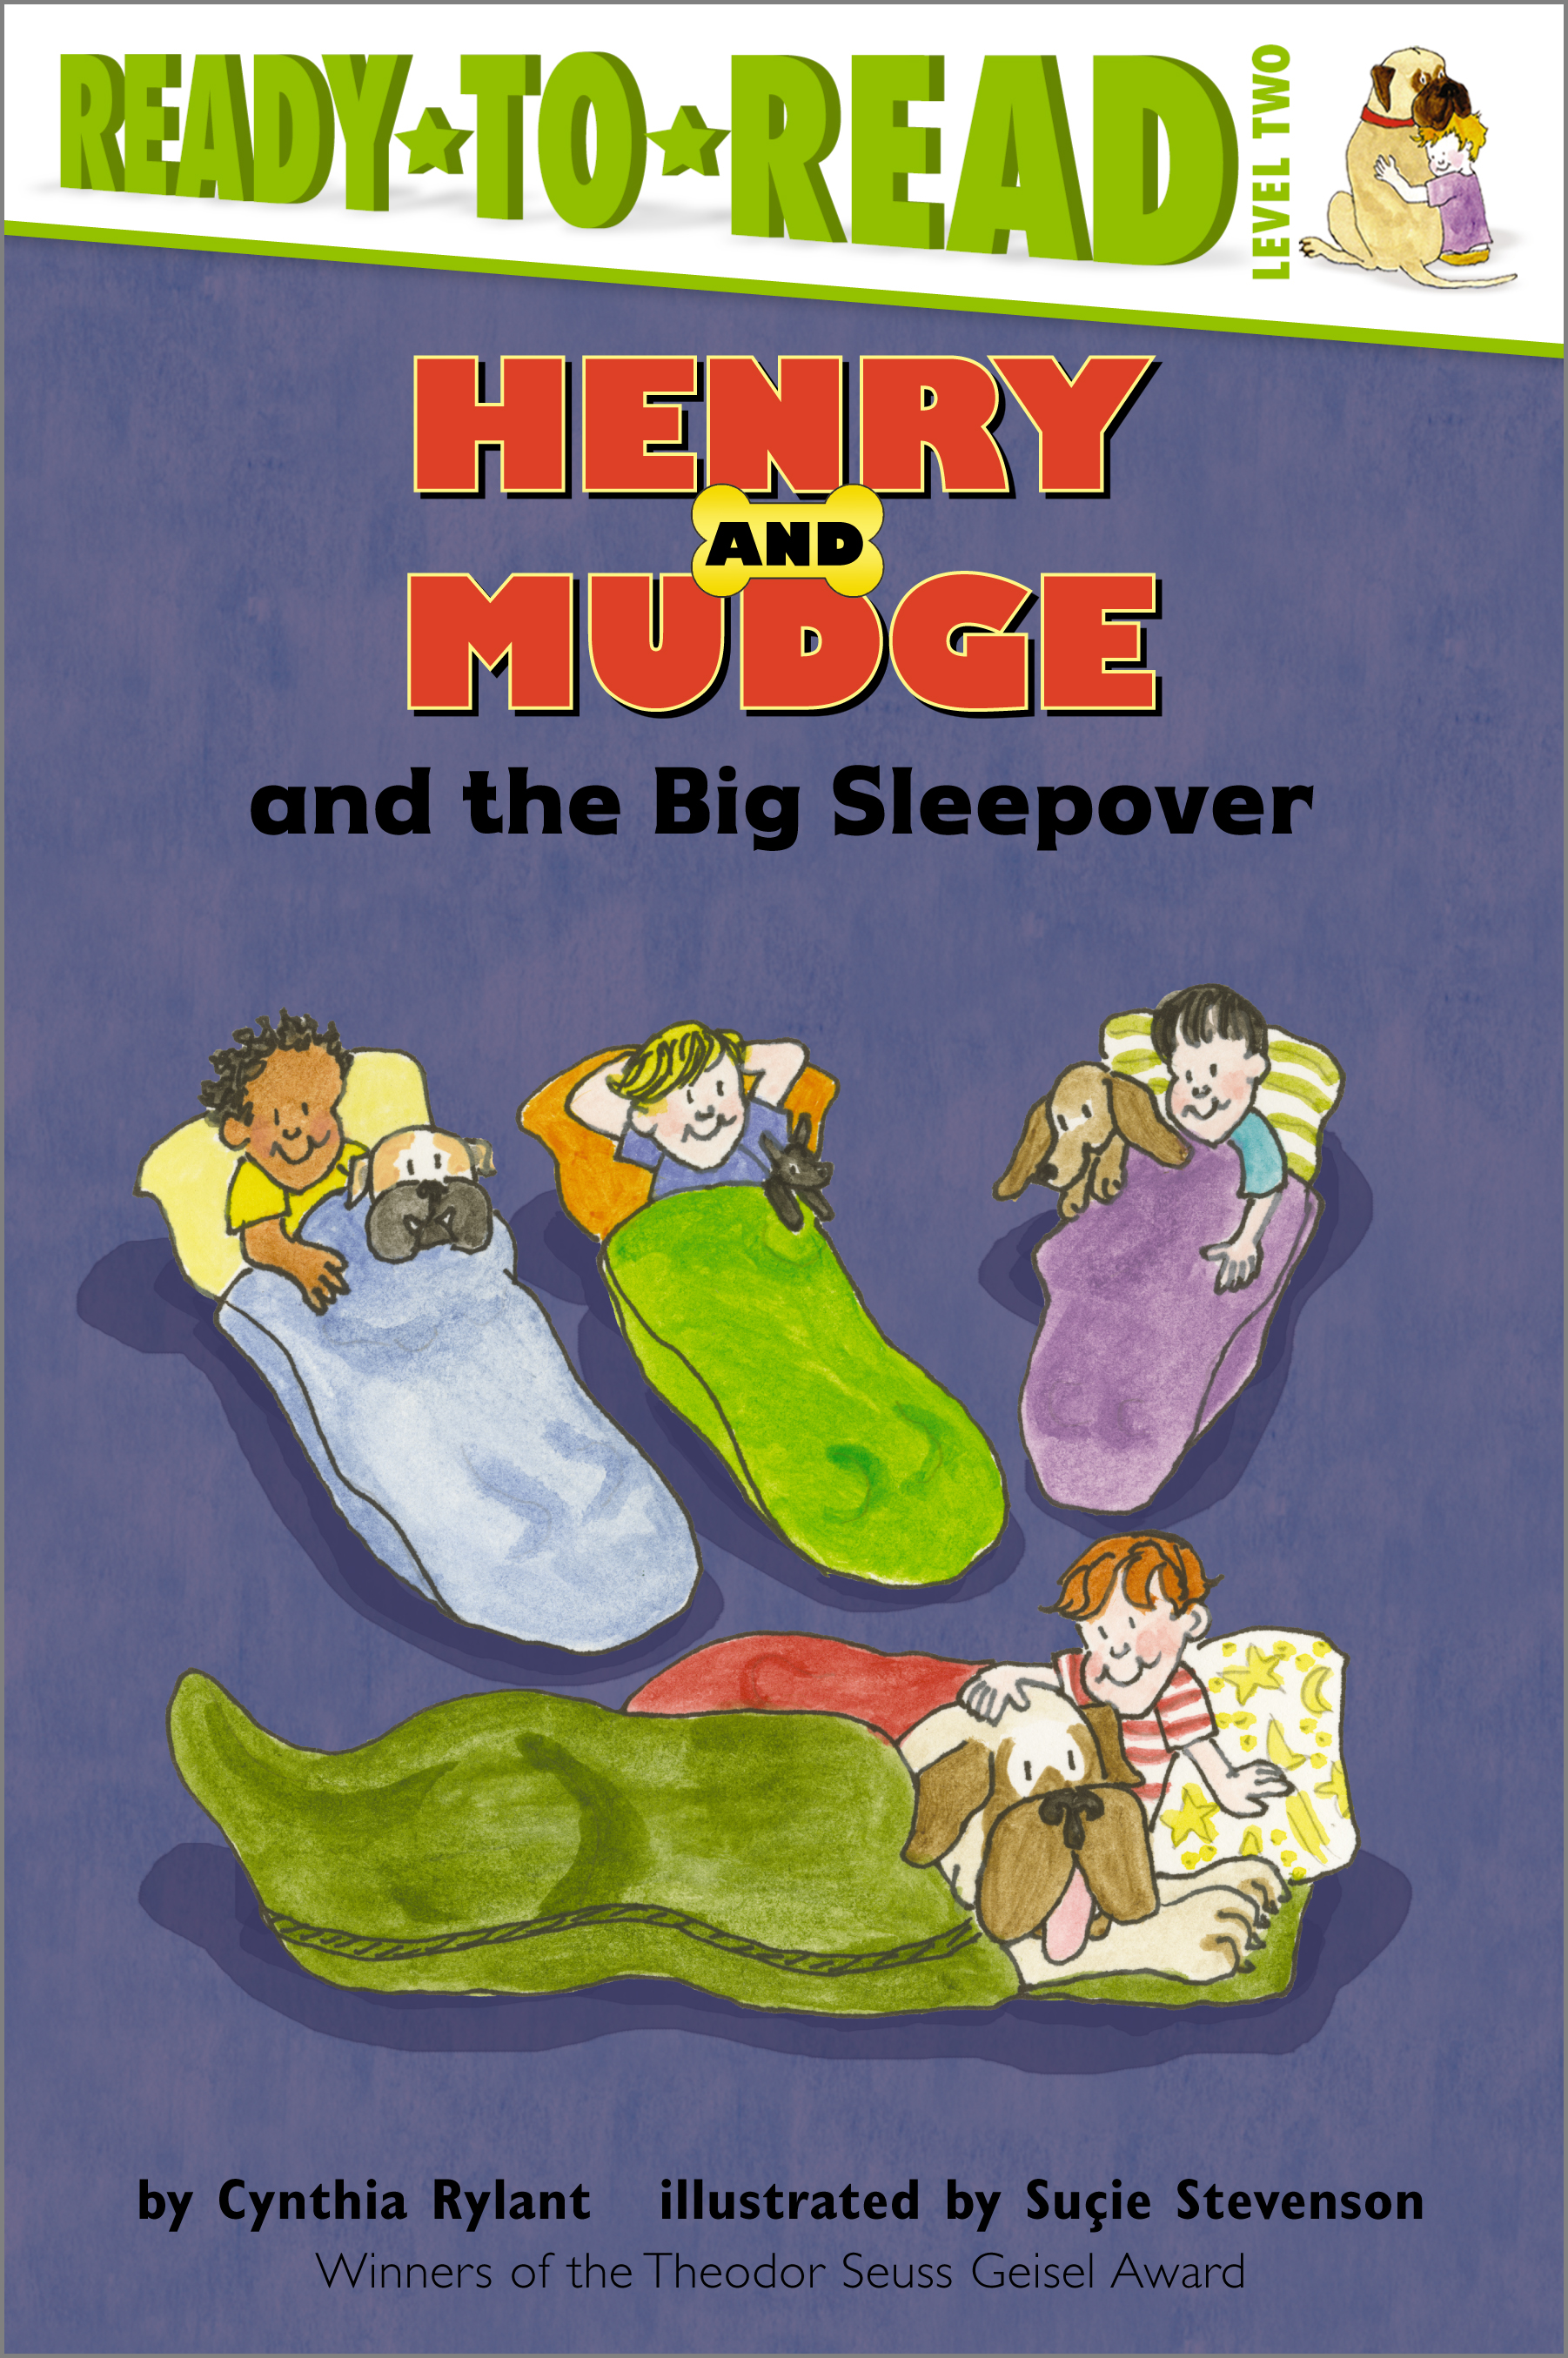 Book Cover Image (jpg): Henry and Mudge and the Big Sleepover